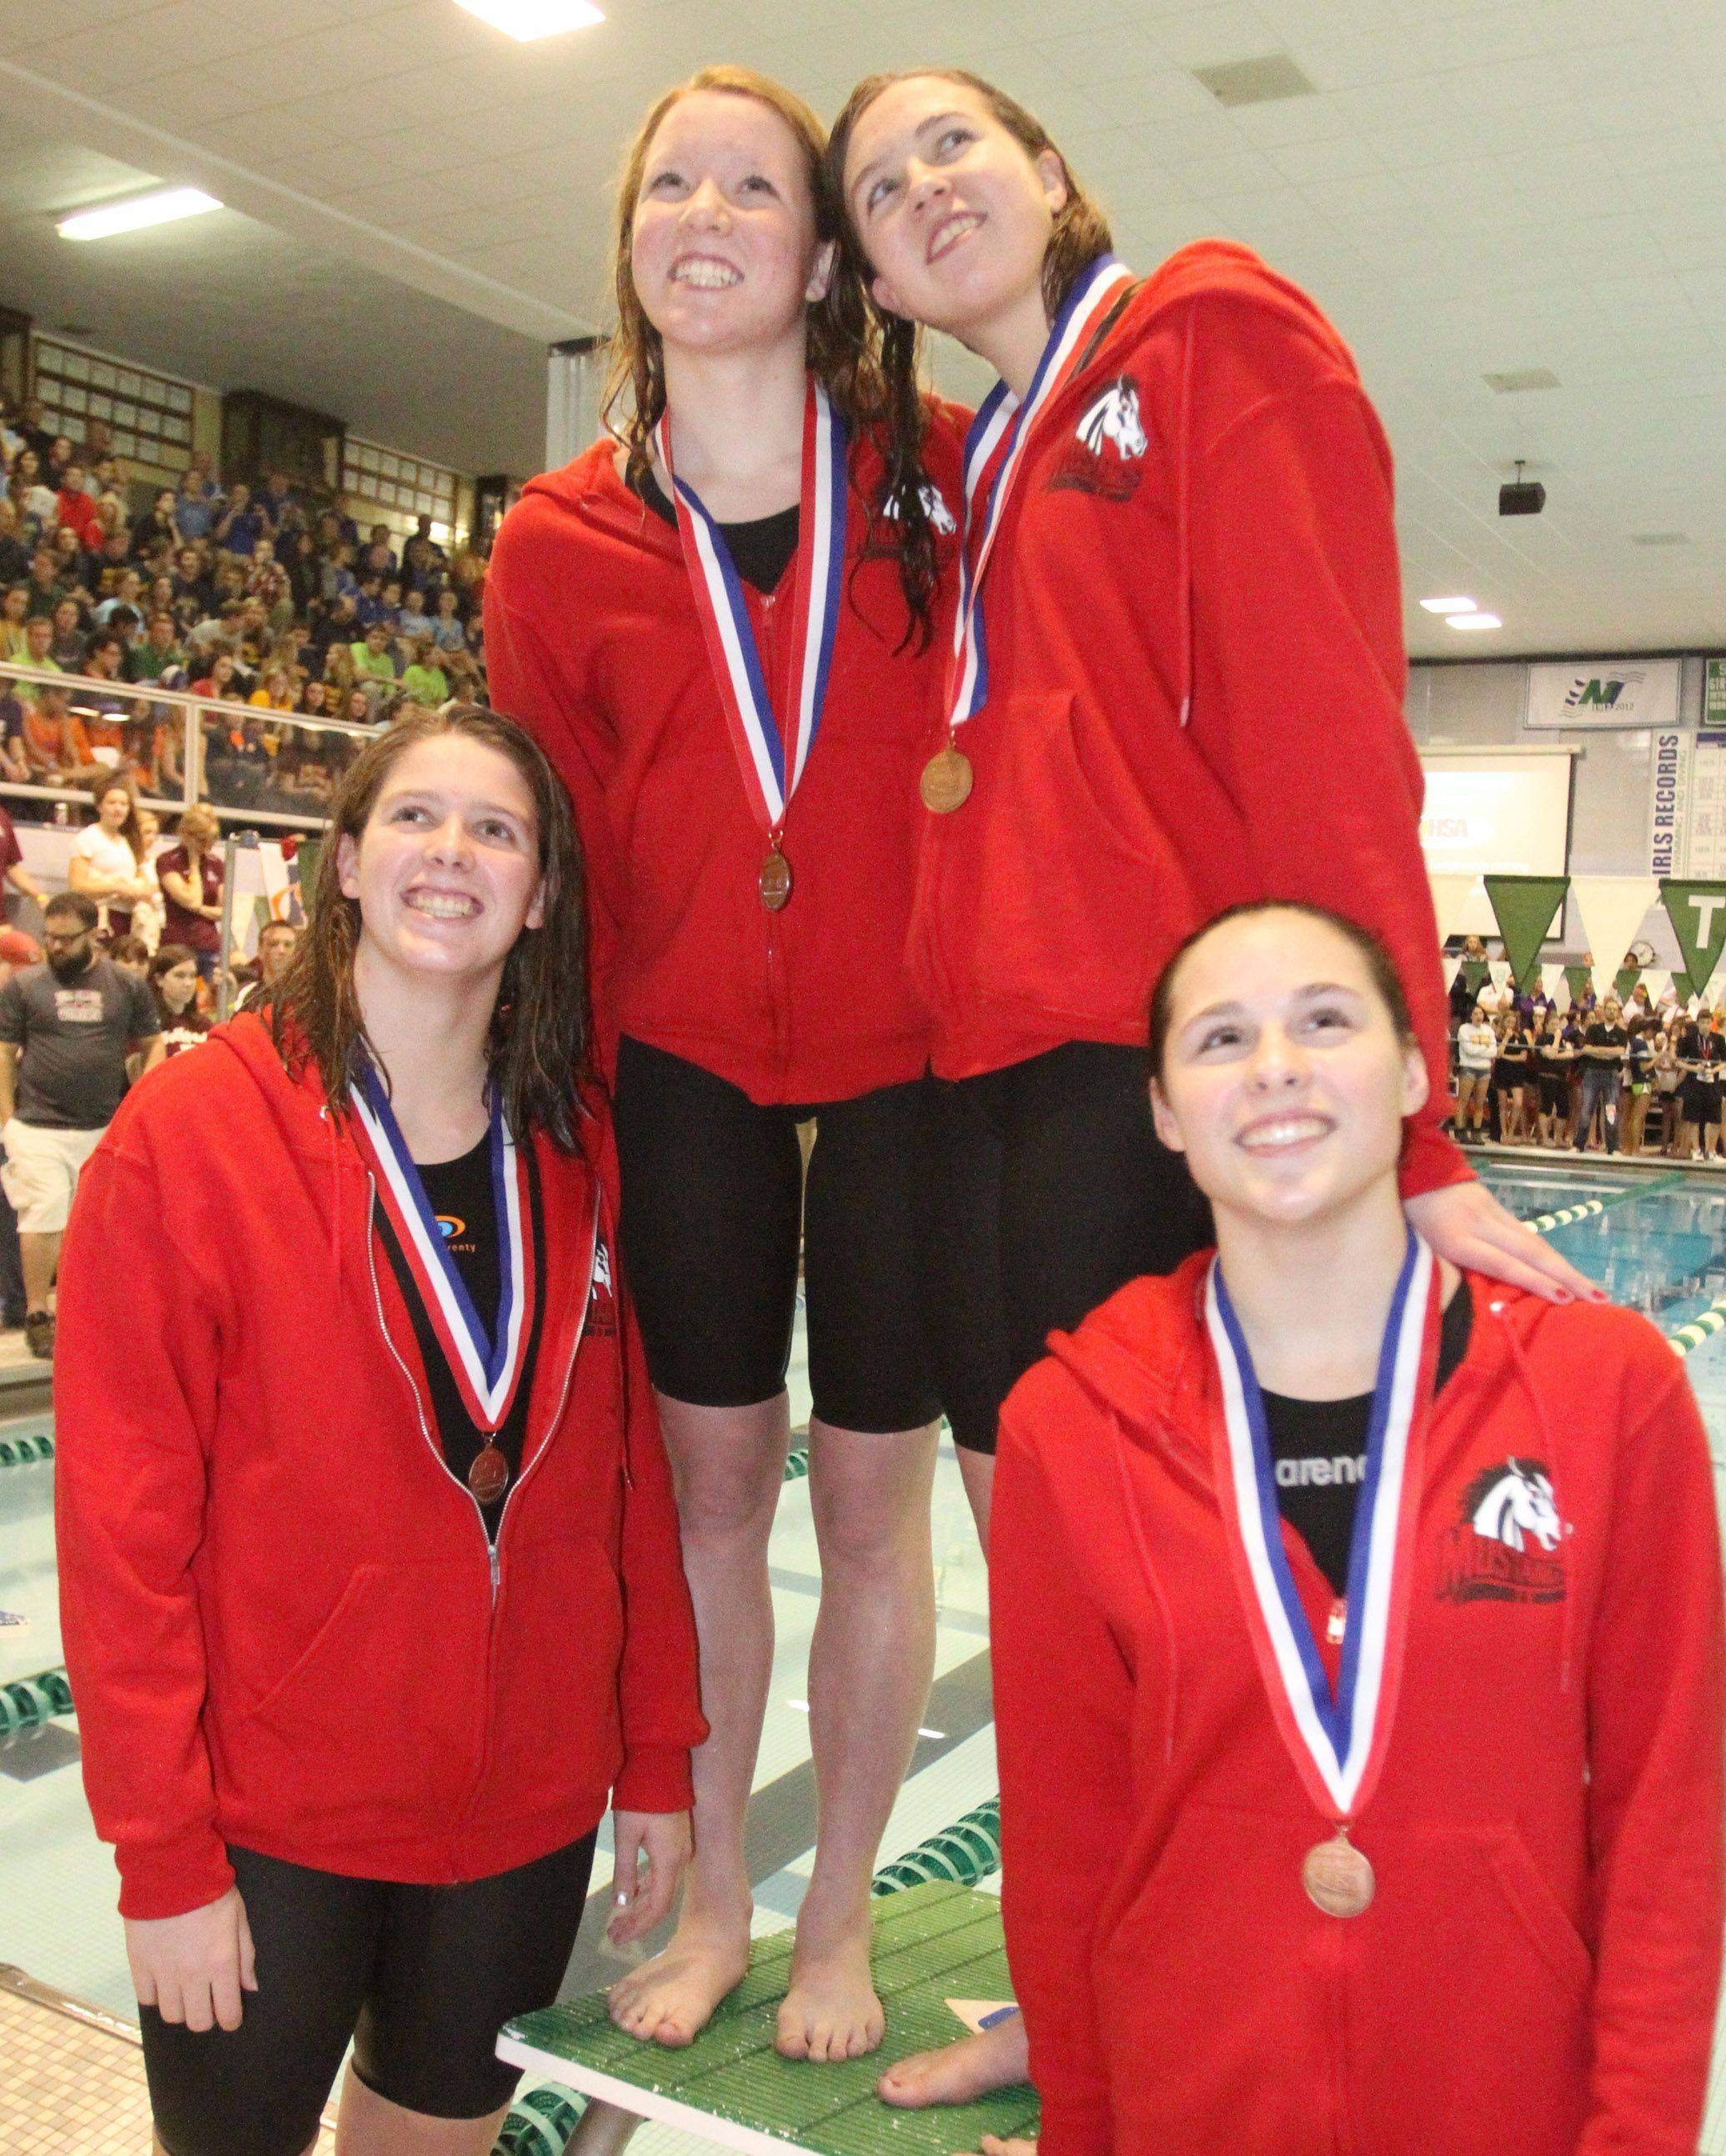 Mundelien's Erin Falconer, Jennifer Kordik, Meghan Falconer, and Karrie Kozokar placed 12th in the 200-yard medley relay at the IHSA state championships in Winnetka on Saturday, November 19th.